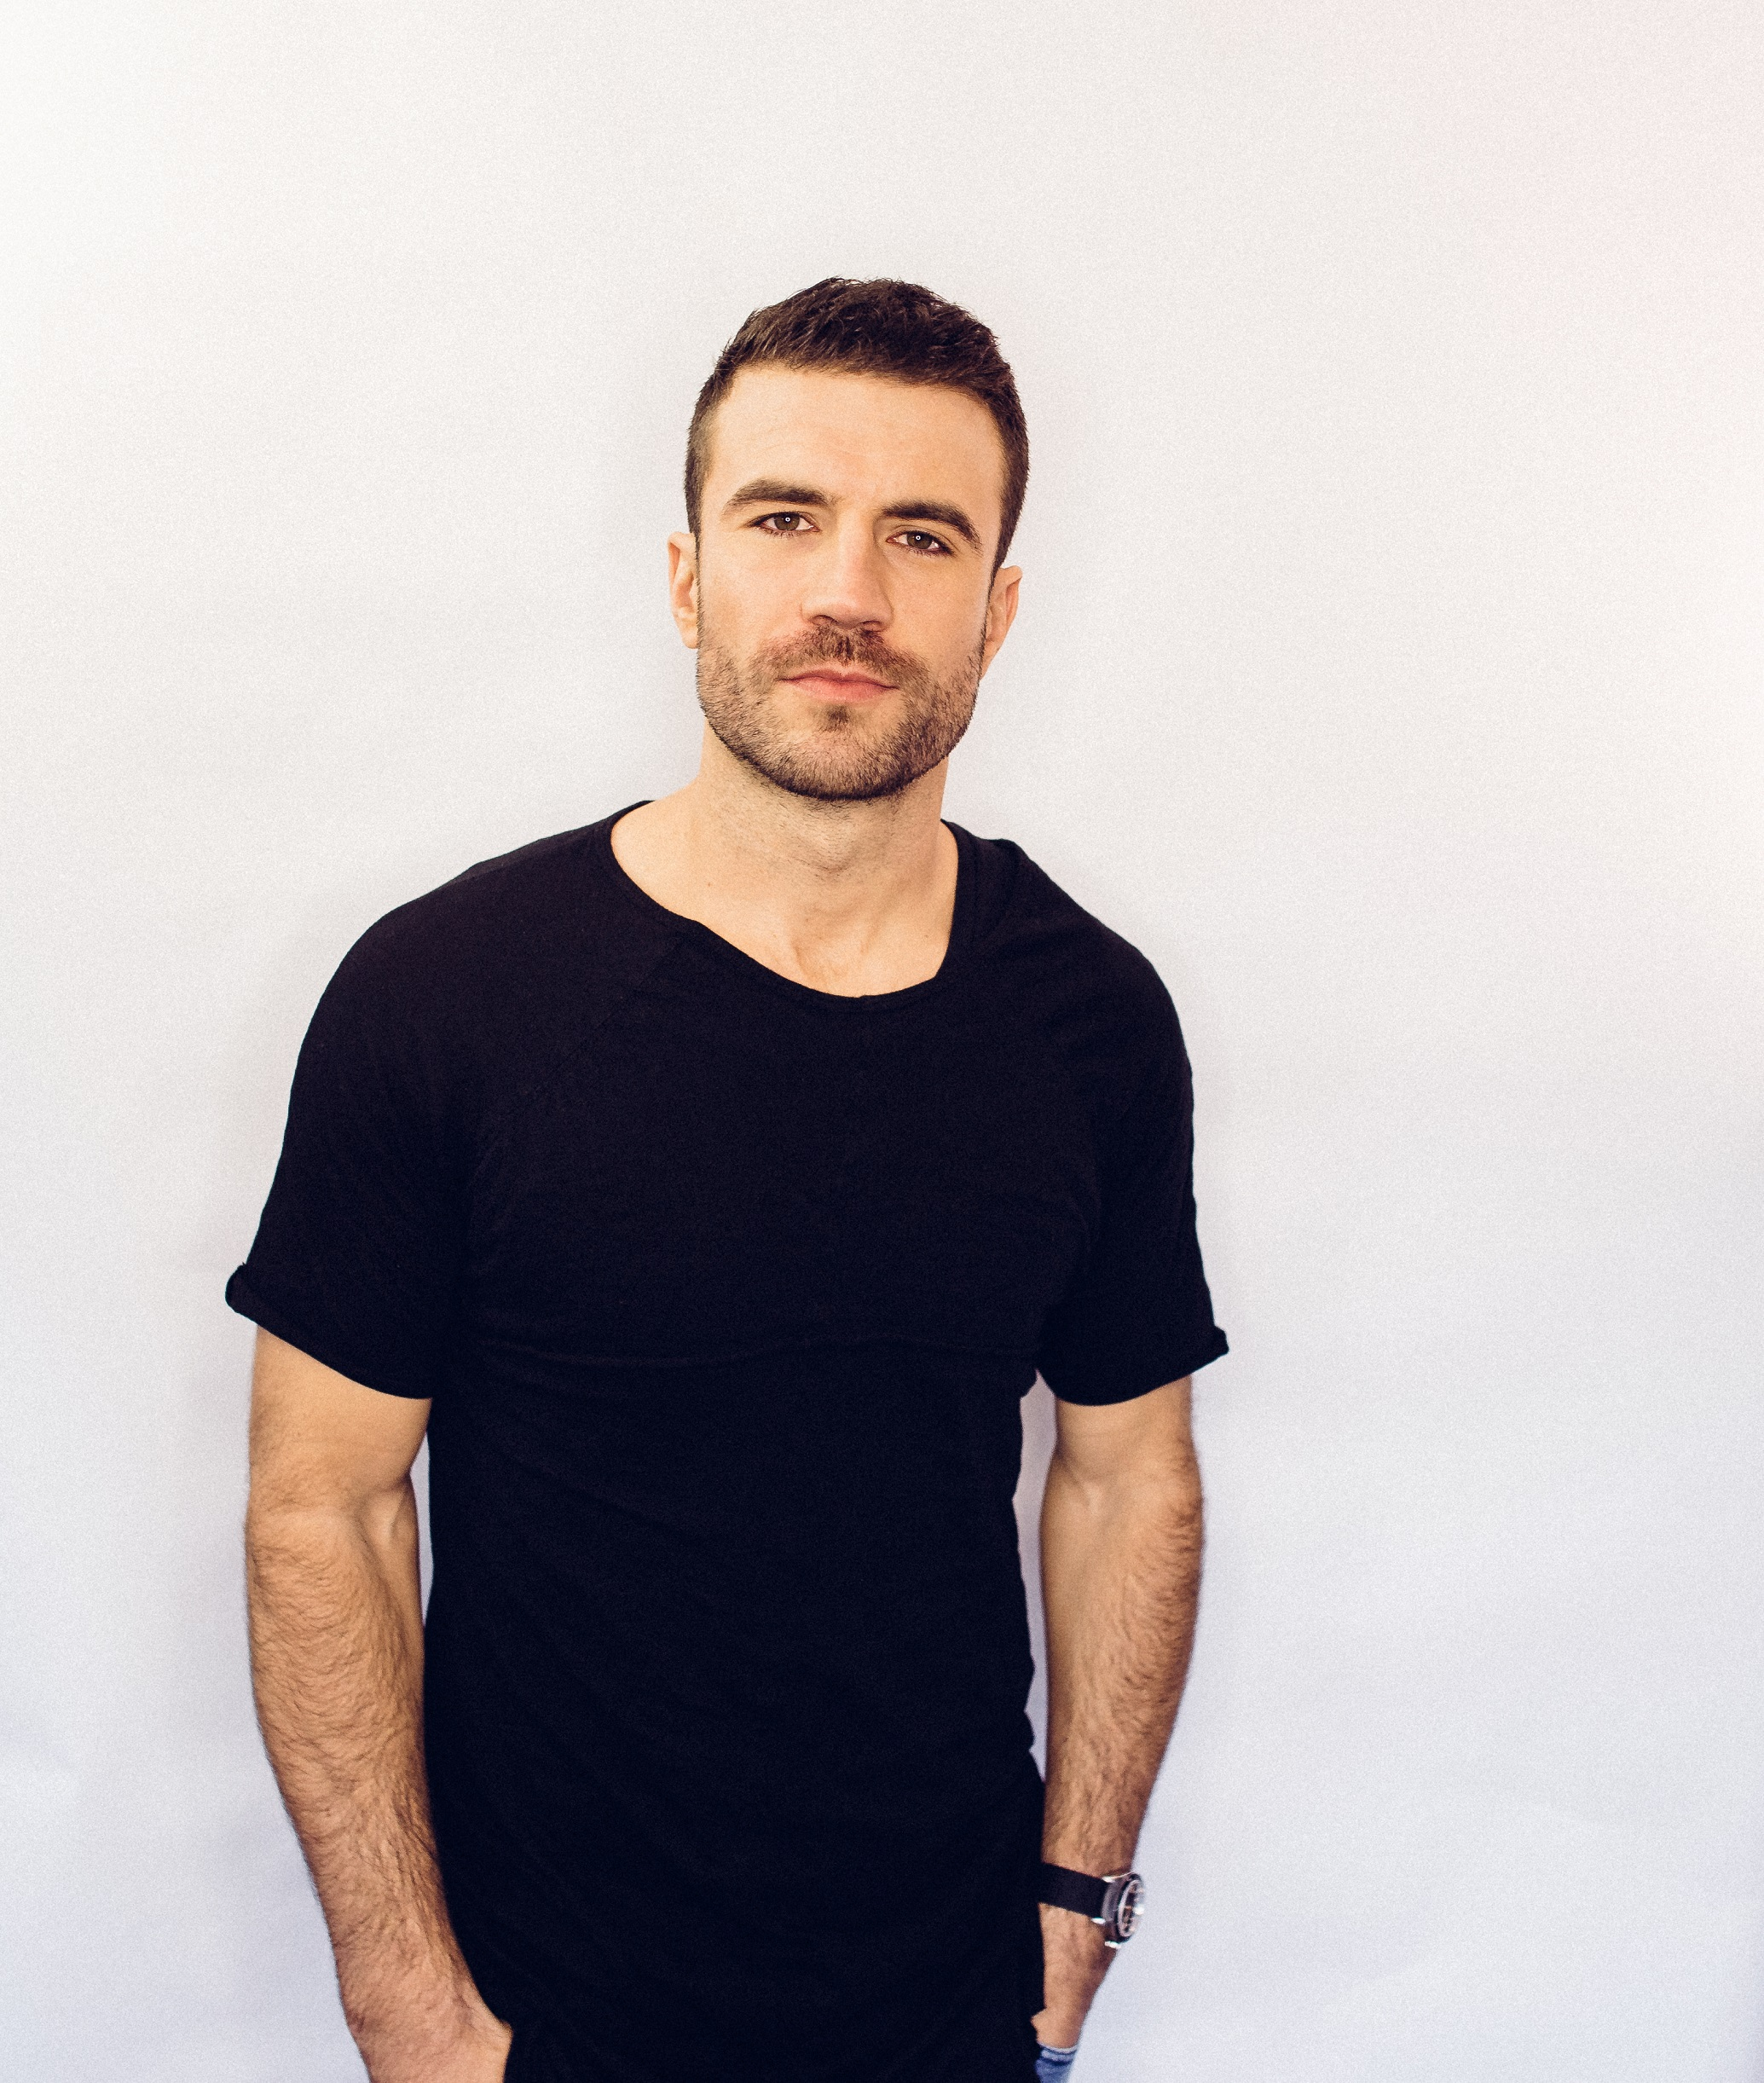 SAM HUNT PERFORMS 'BODY LIKE A BACK ROAD' DURING SUNDAY NIGHT'S BILLBOARD MUSIC AWARDS.